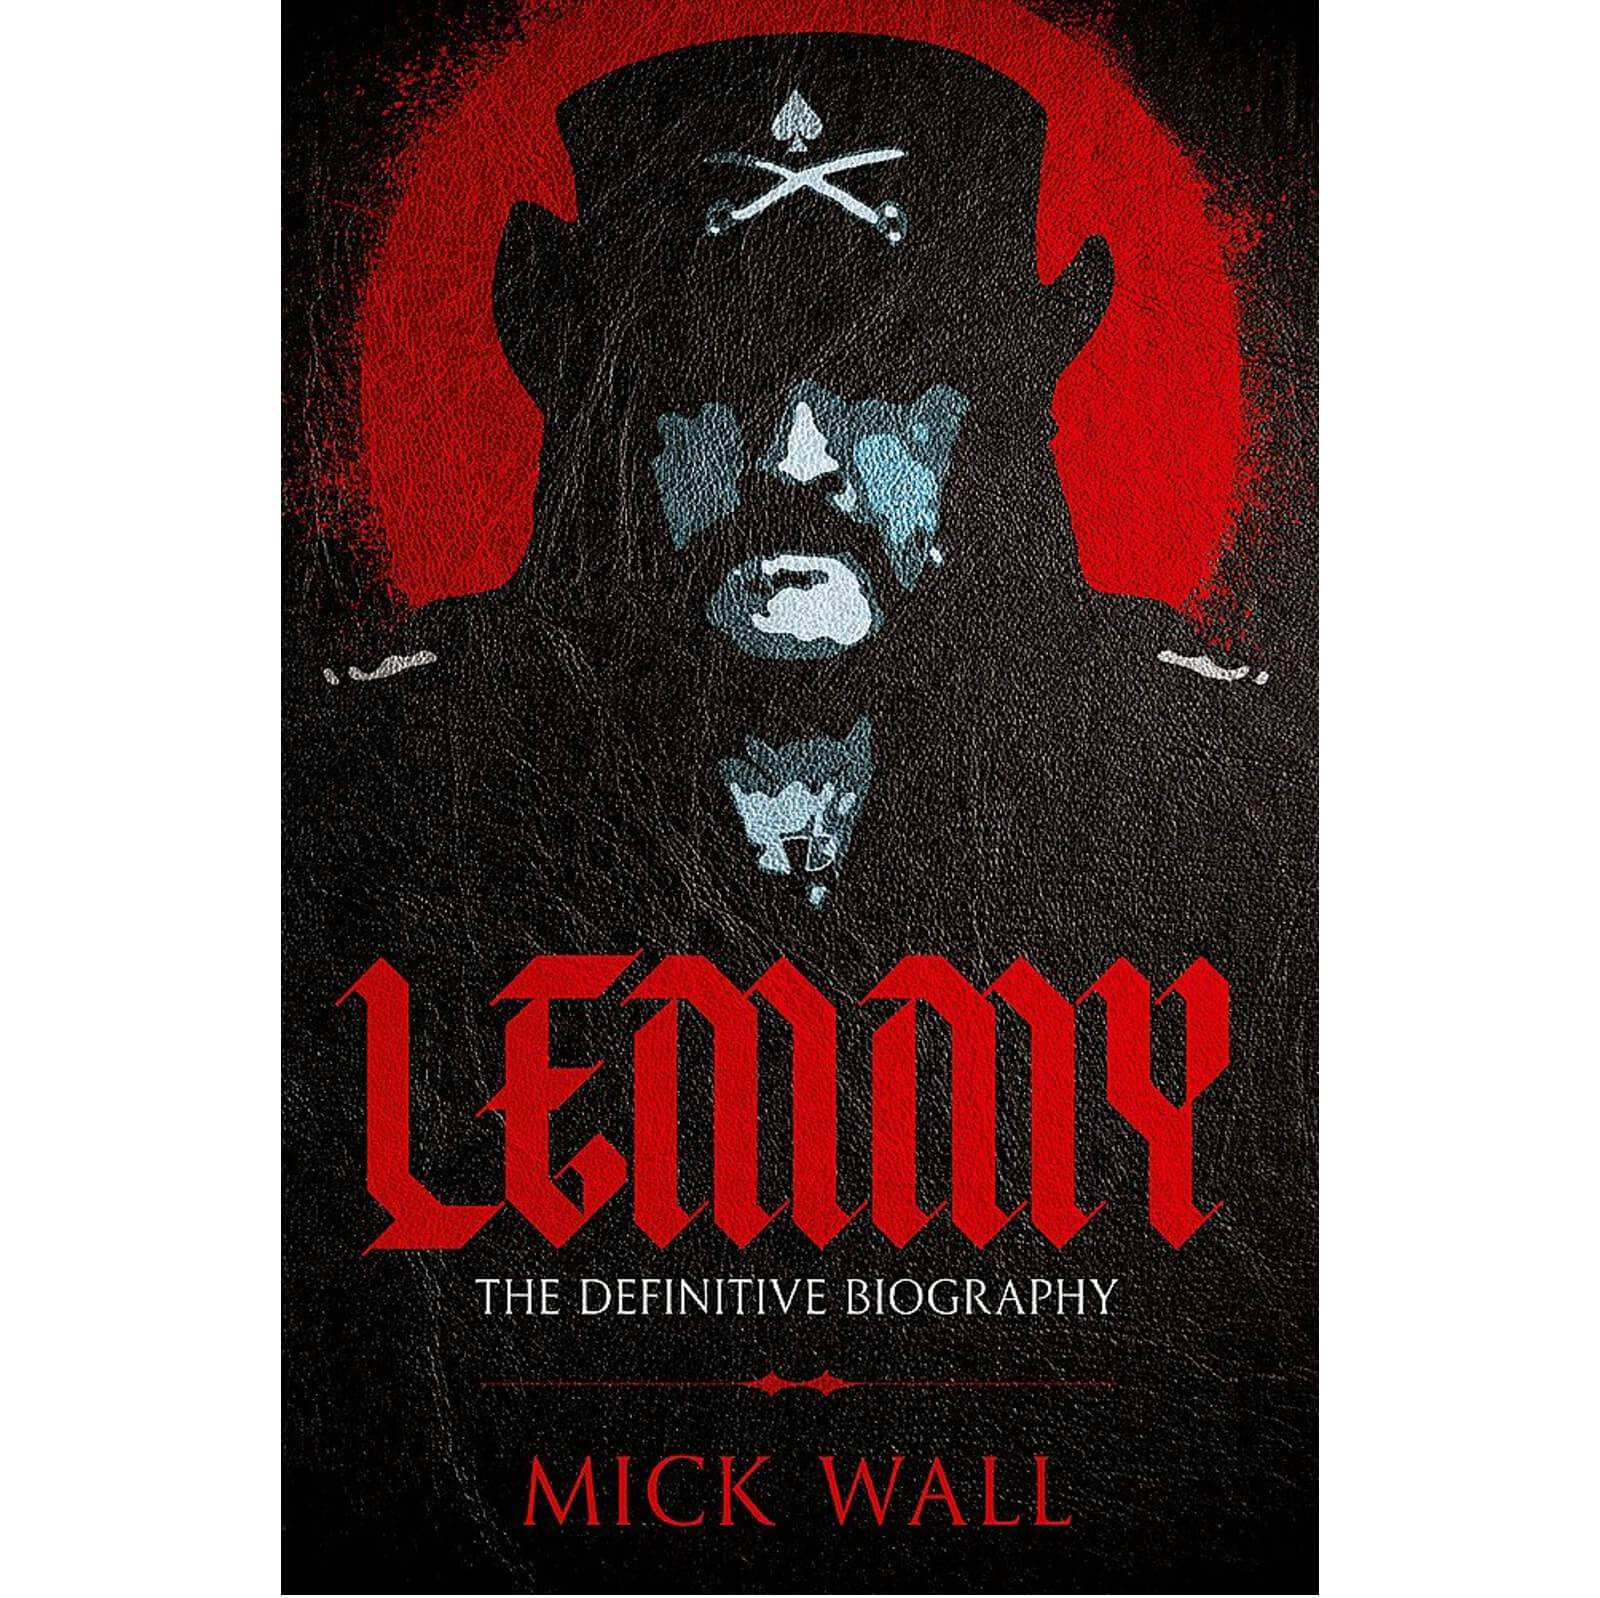 Lemmy: The Definitive Biography by Mick Wall (Paperback)